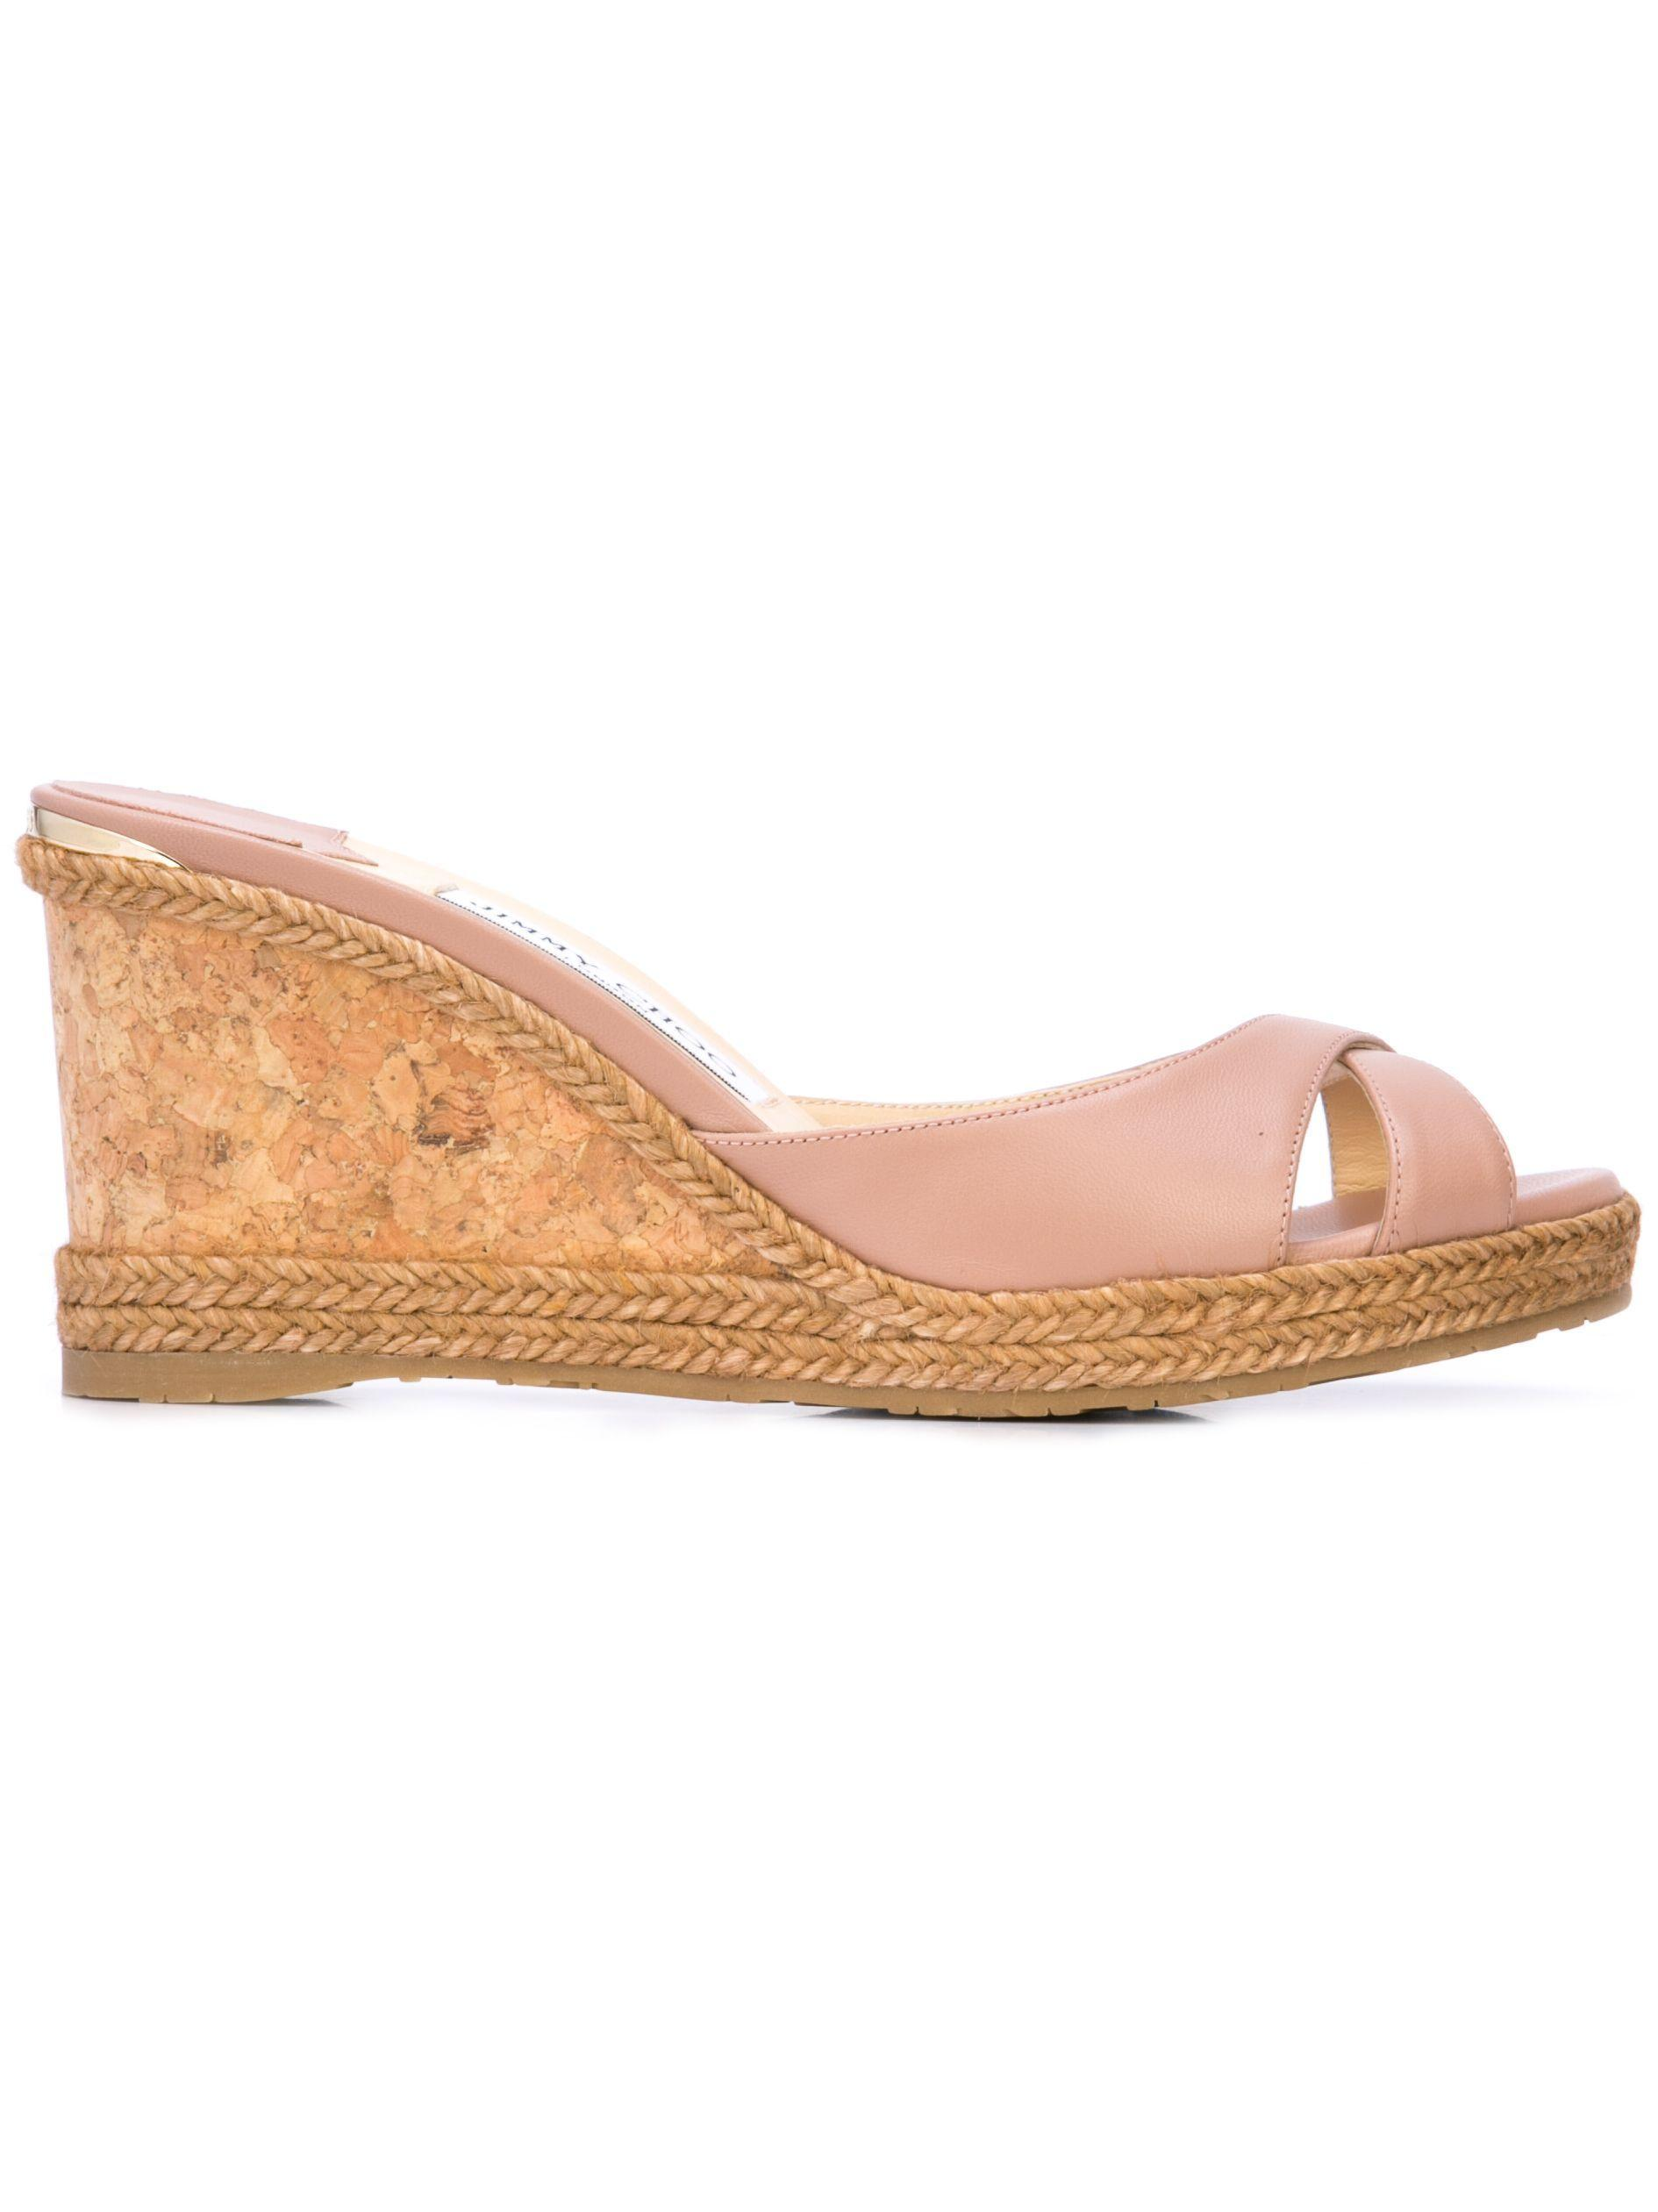 Nappa Wedge 80mm Sandal With Braid Trim